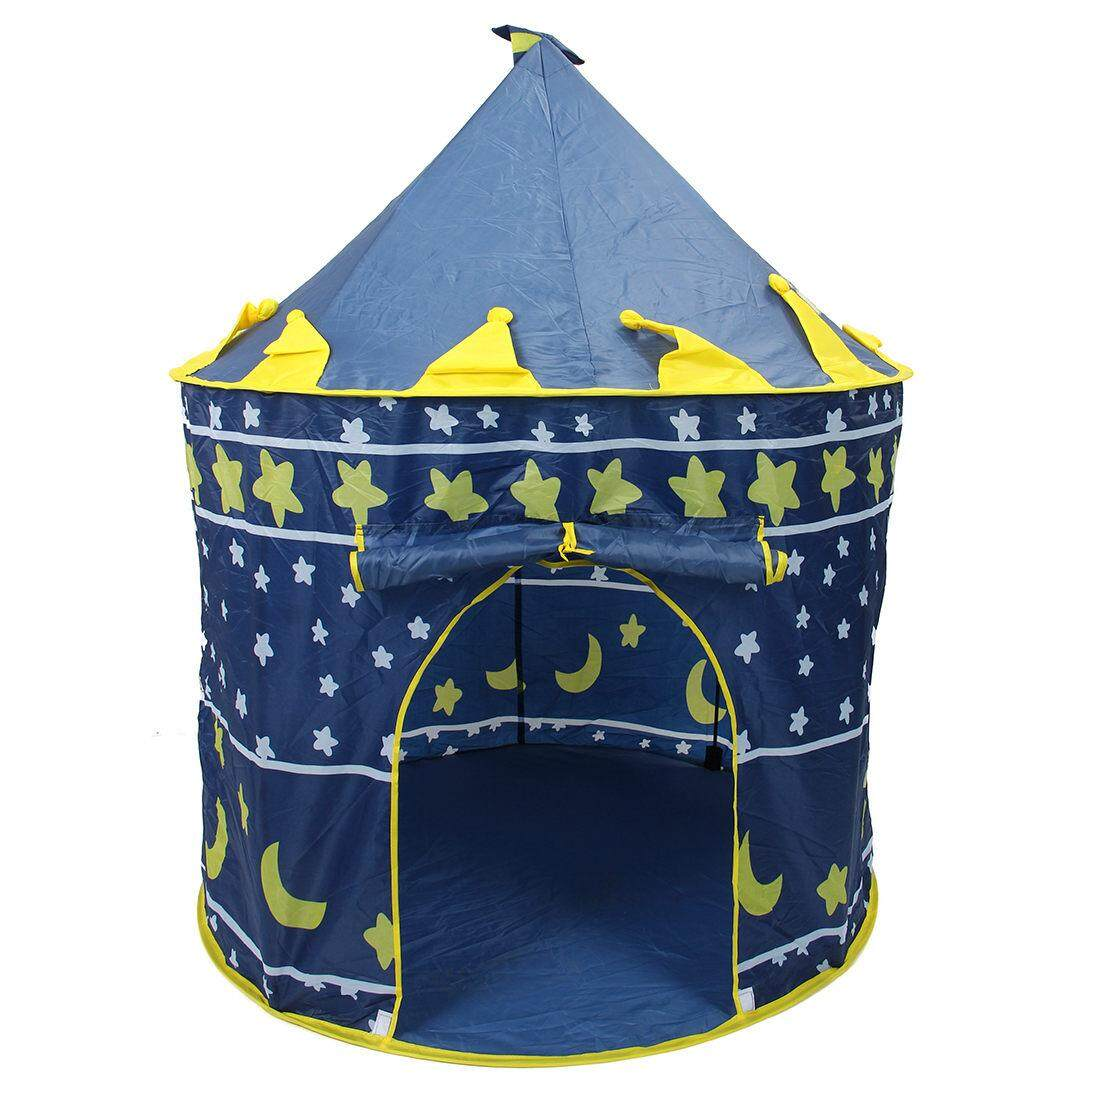 Ultralarge Children Beach Tent, Baby Toy Play Game House, Kids Princess Prince Castle Indoor Outdoor Toys Tents Christmas Gifts By Jonesmayer.